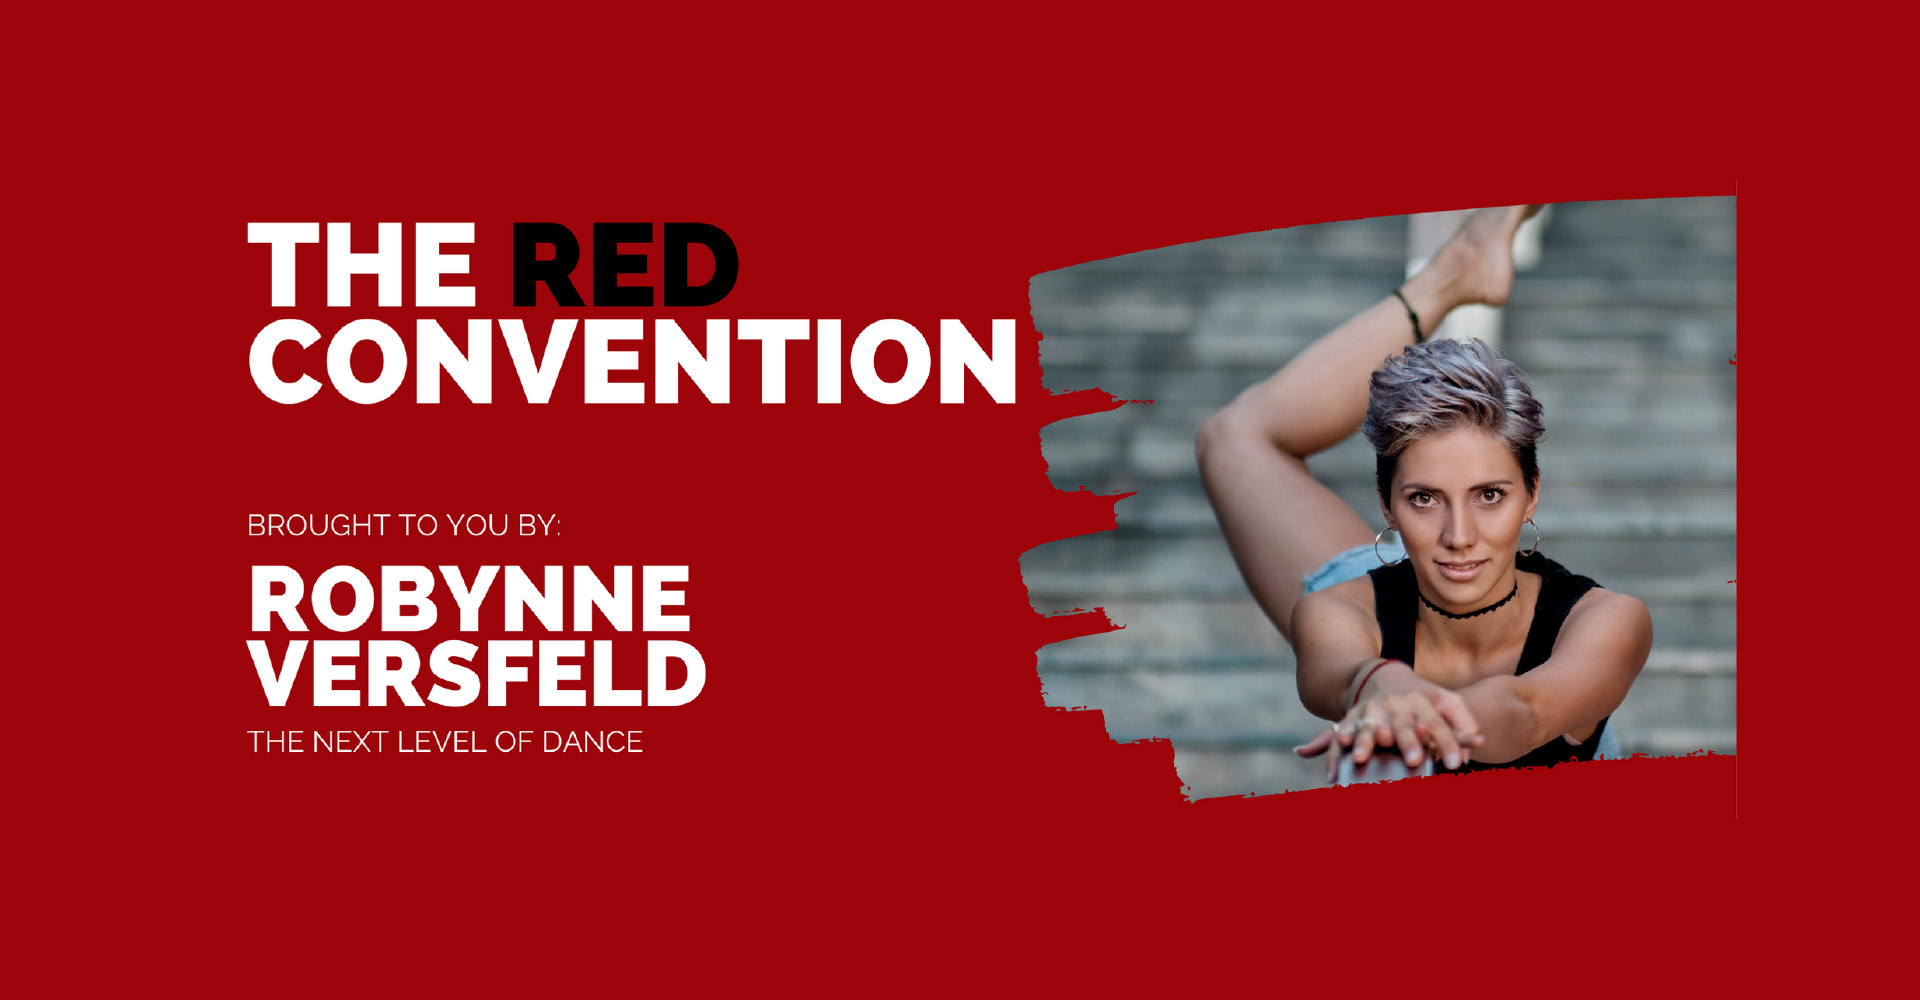 The Red Convention Robynne Versfeld